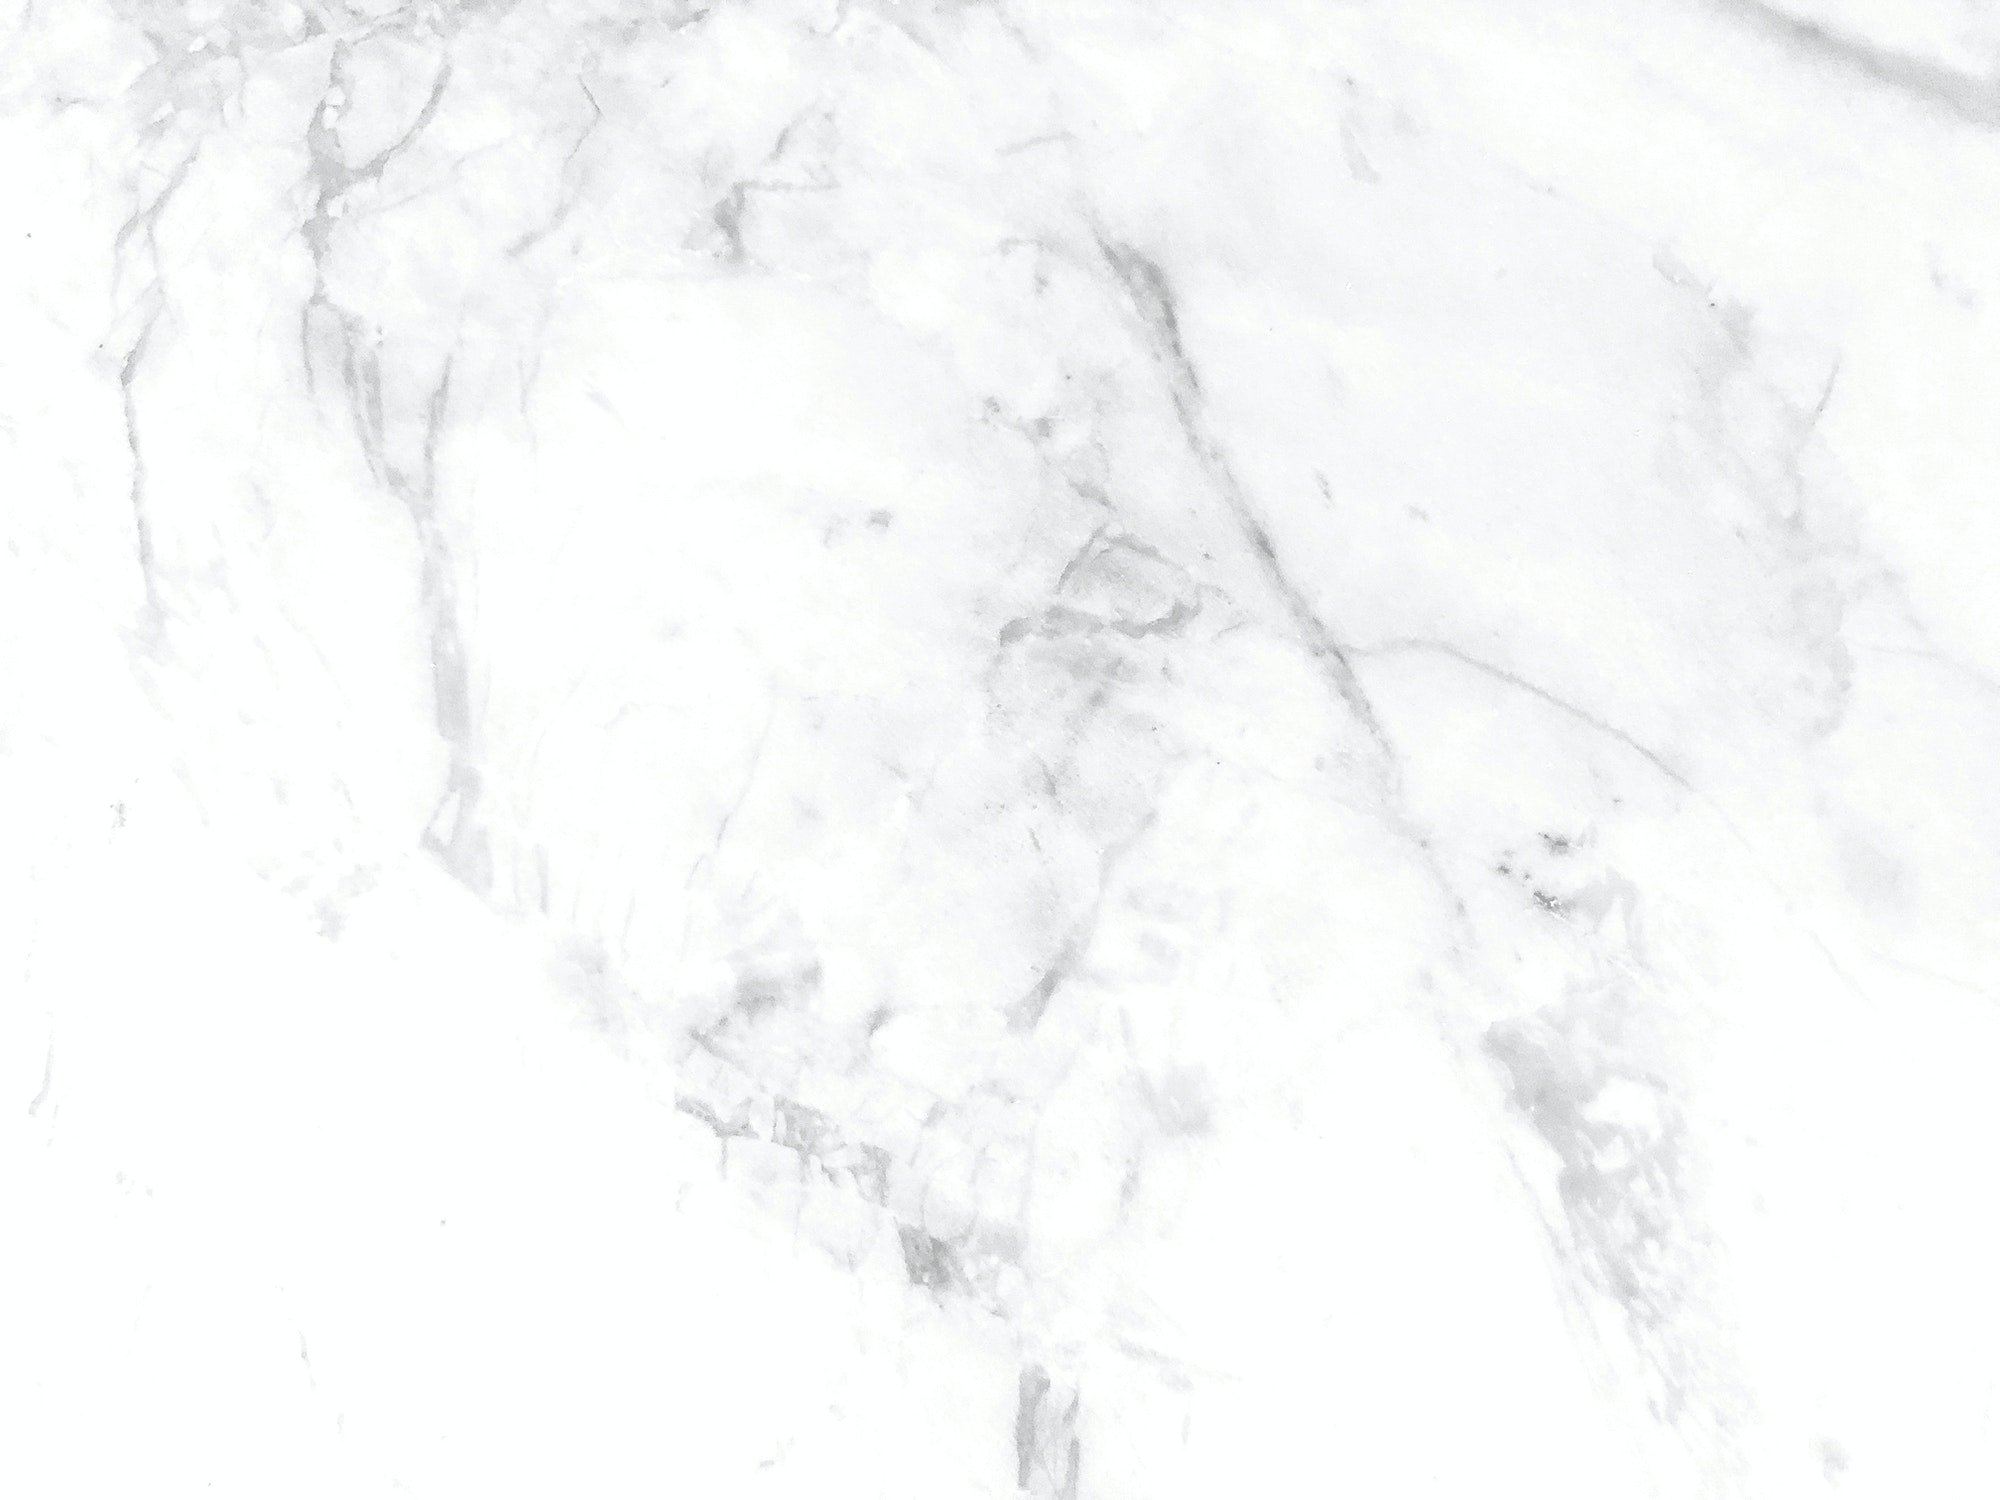 White marble texture with natural pattern for background or design art work. High Resolution